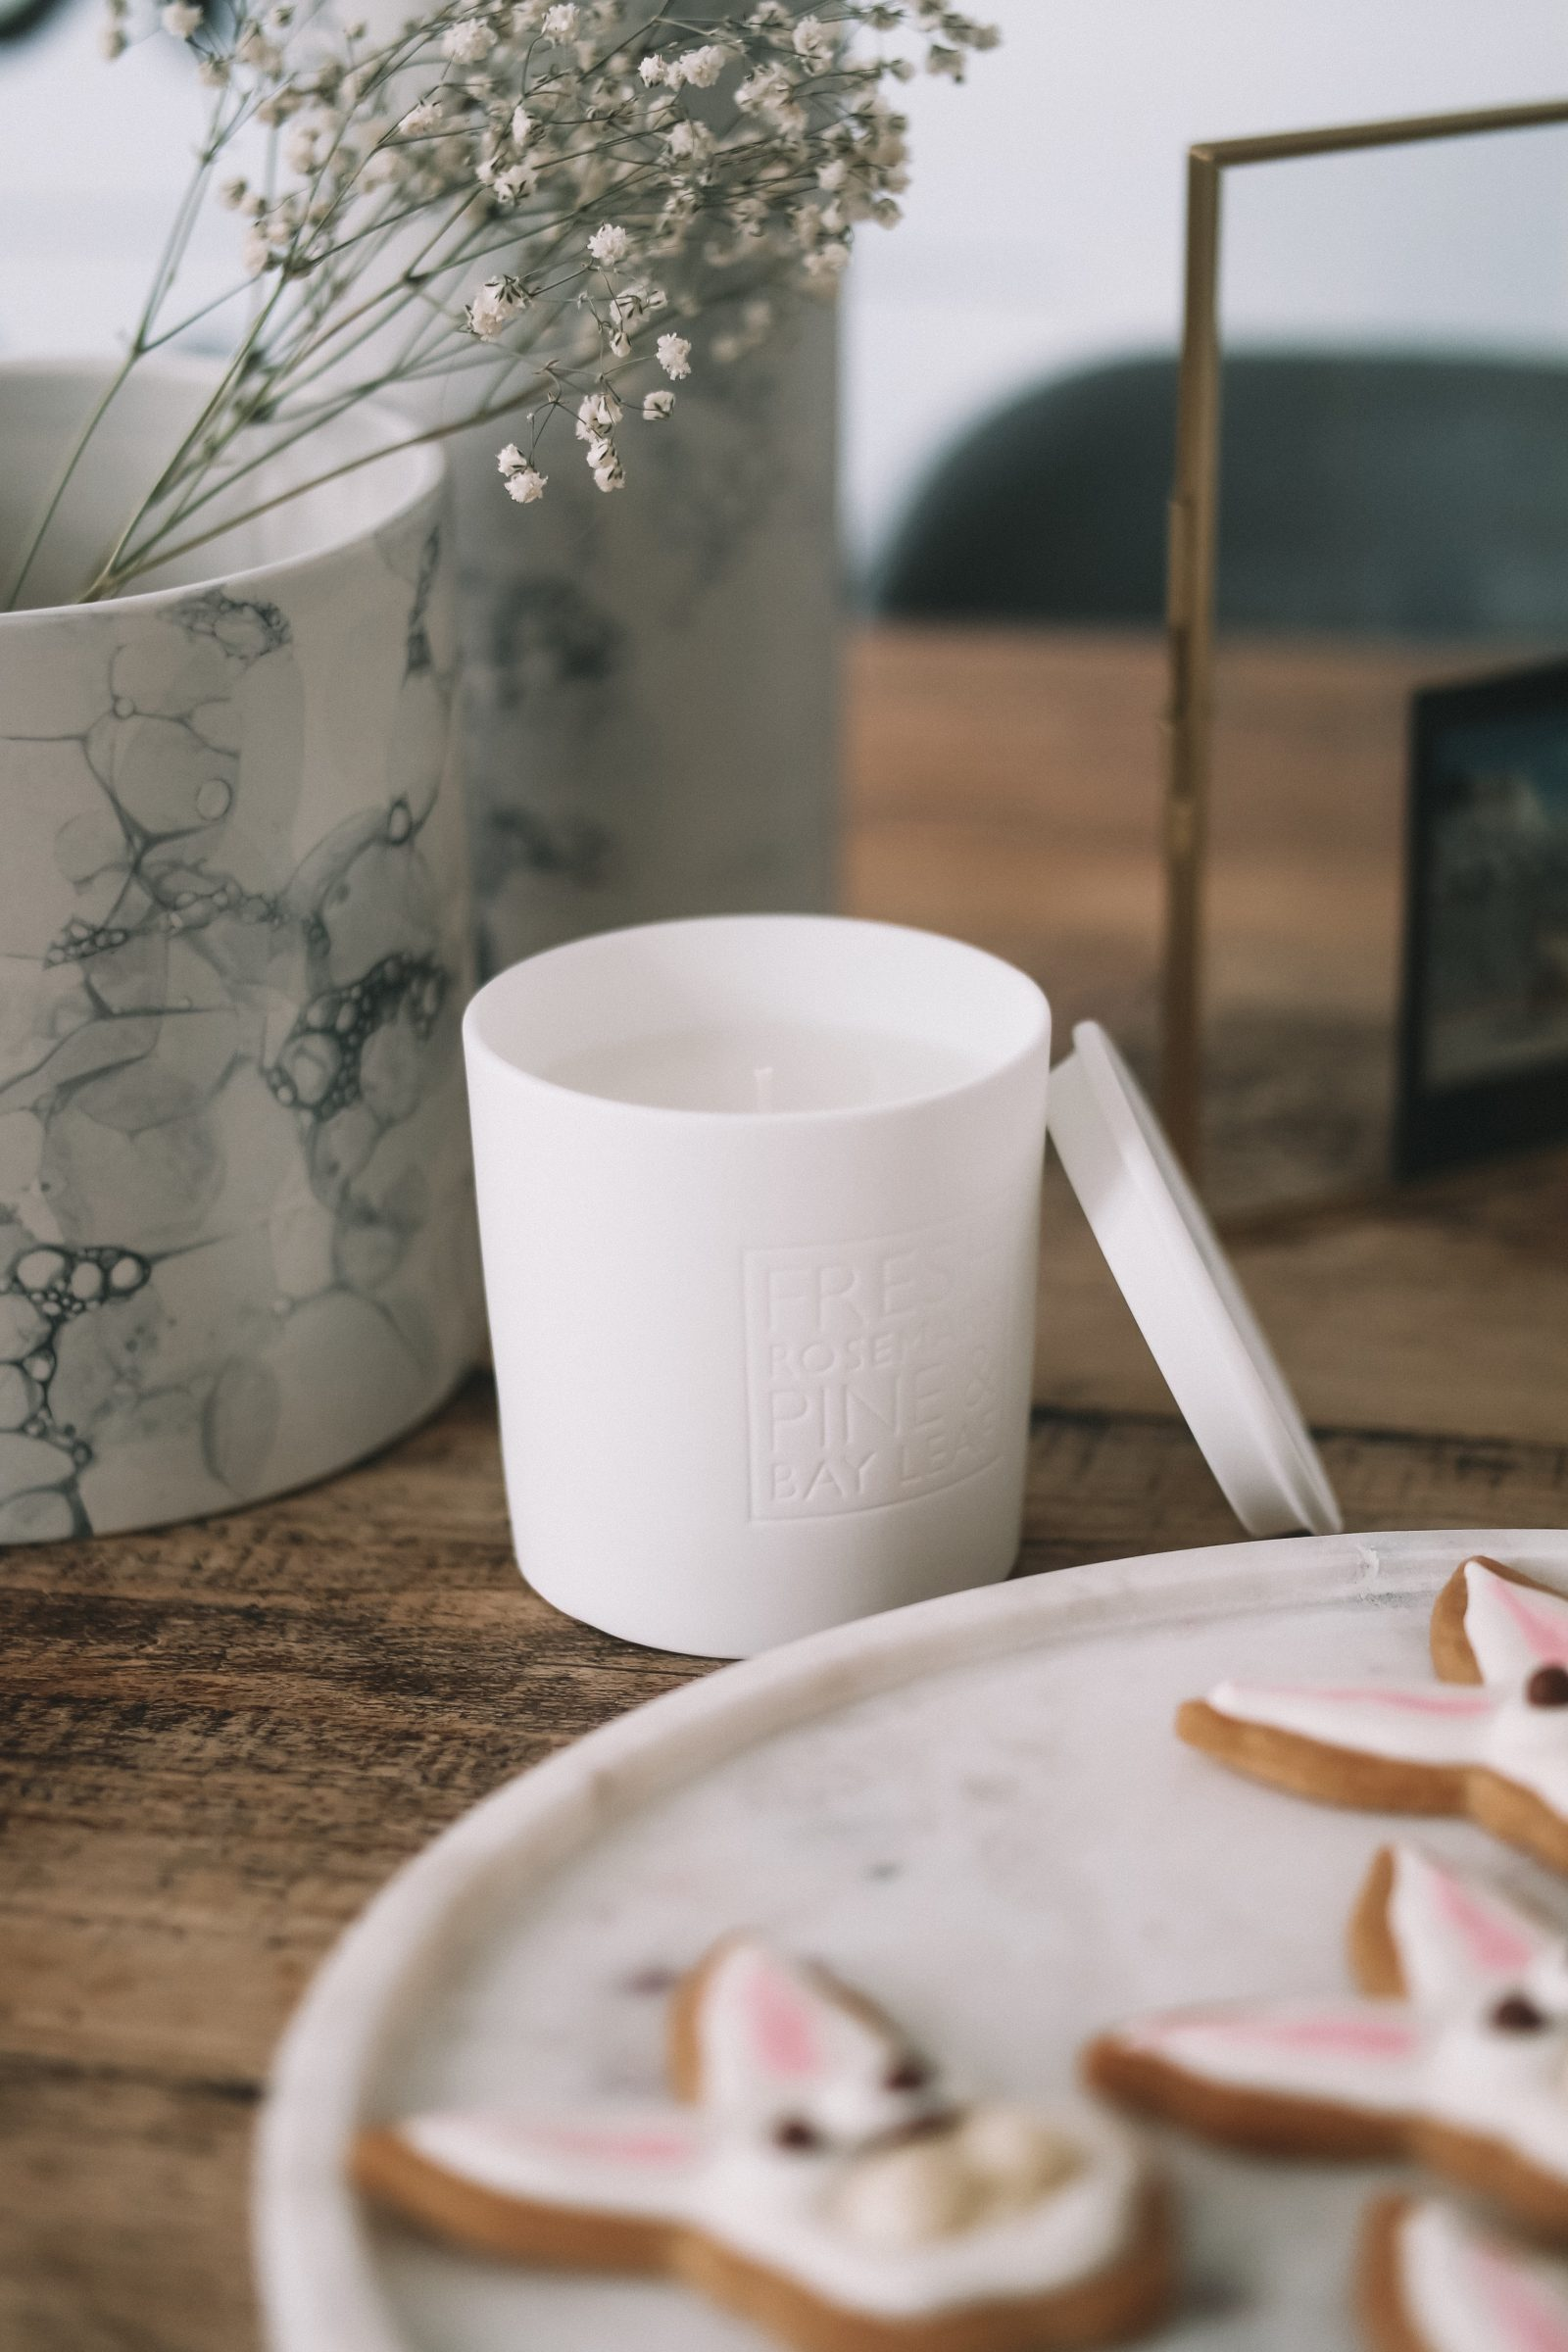 Spring Interiors - Rosemary Candle from The White Company